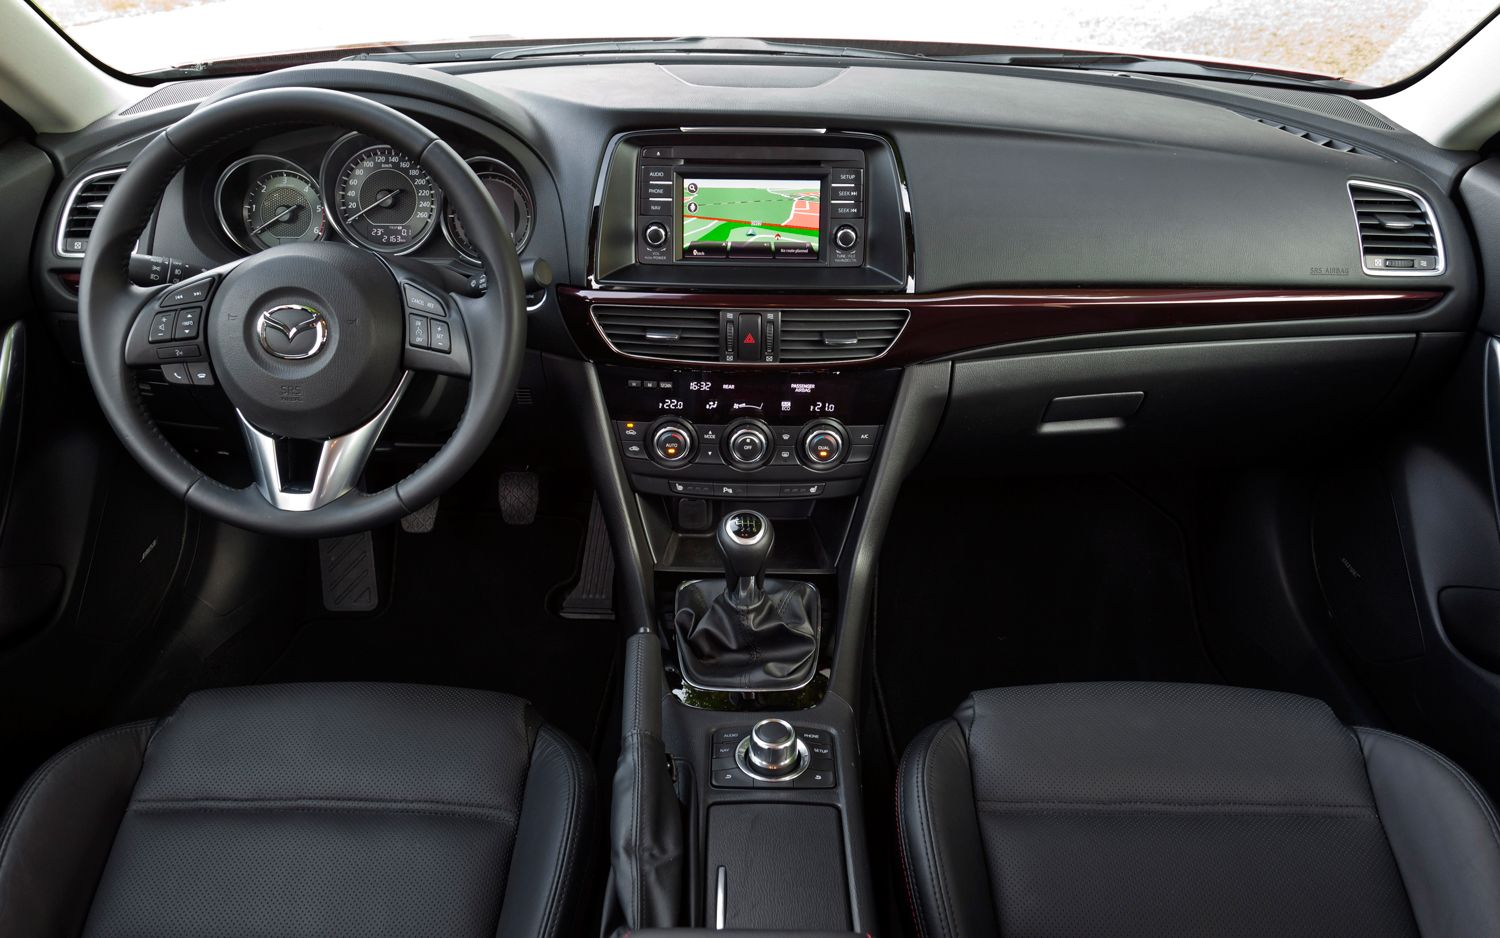 2015 Mazda 6 Front Interior and Dashboard